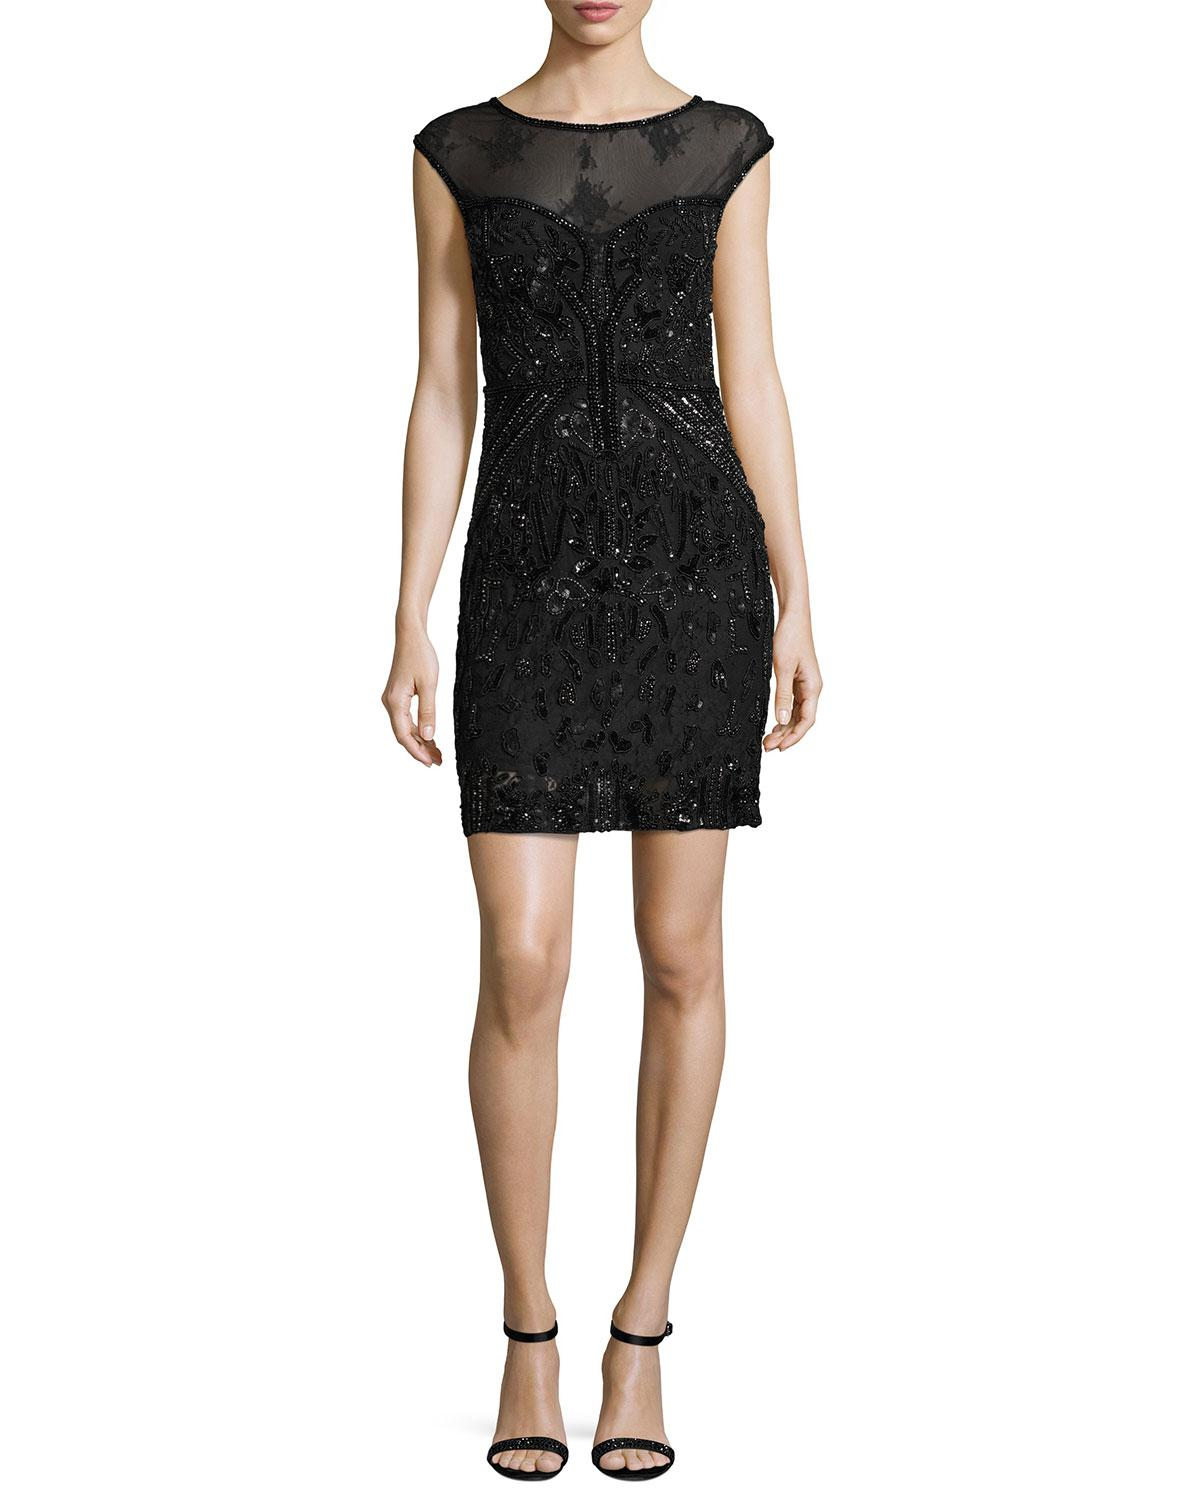 f130f66104 Gallery. Previously sold at  Neiman Marcus · Women s Black Cocktail Dresses  ...